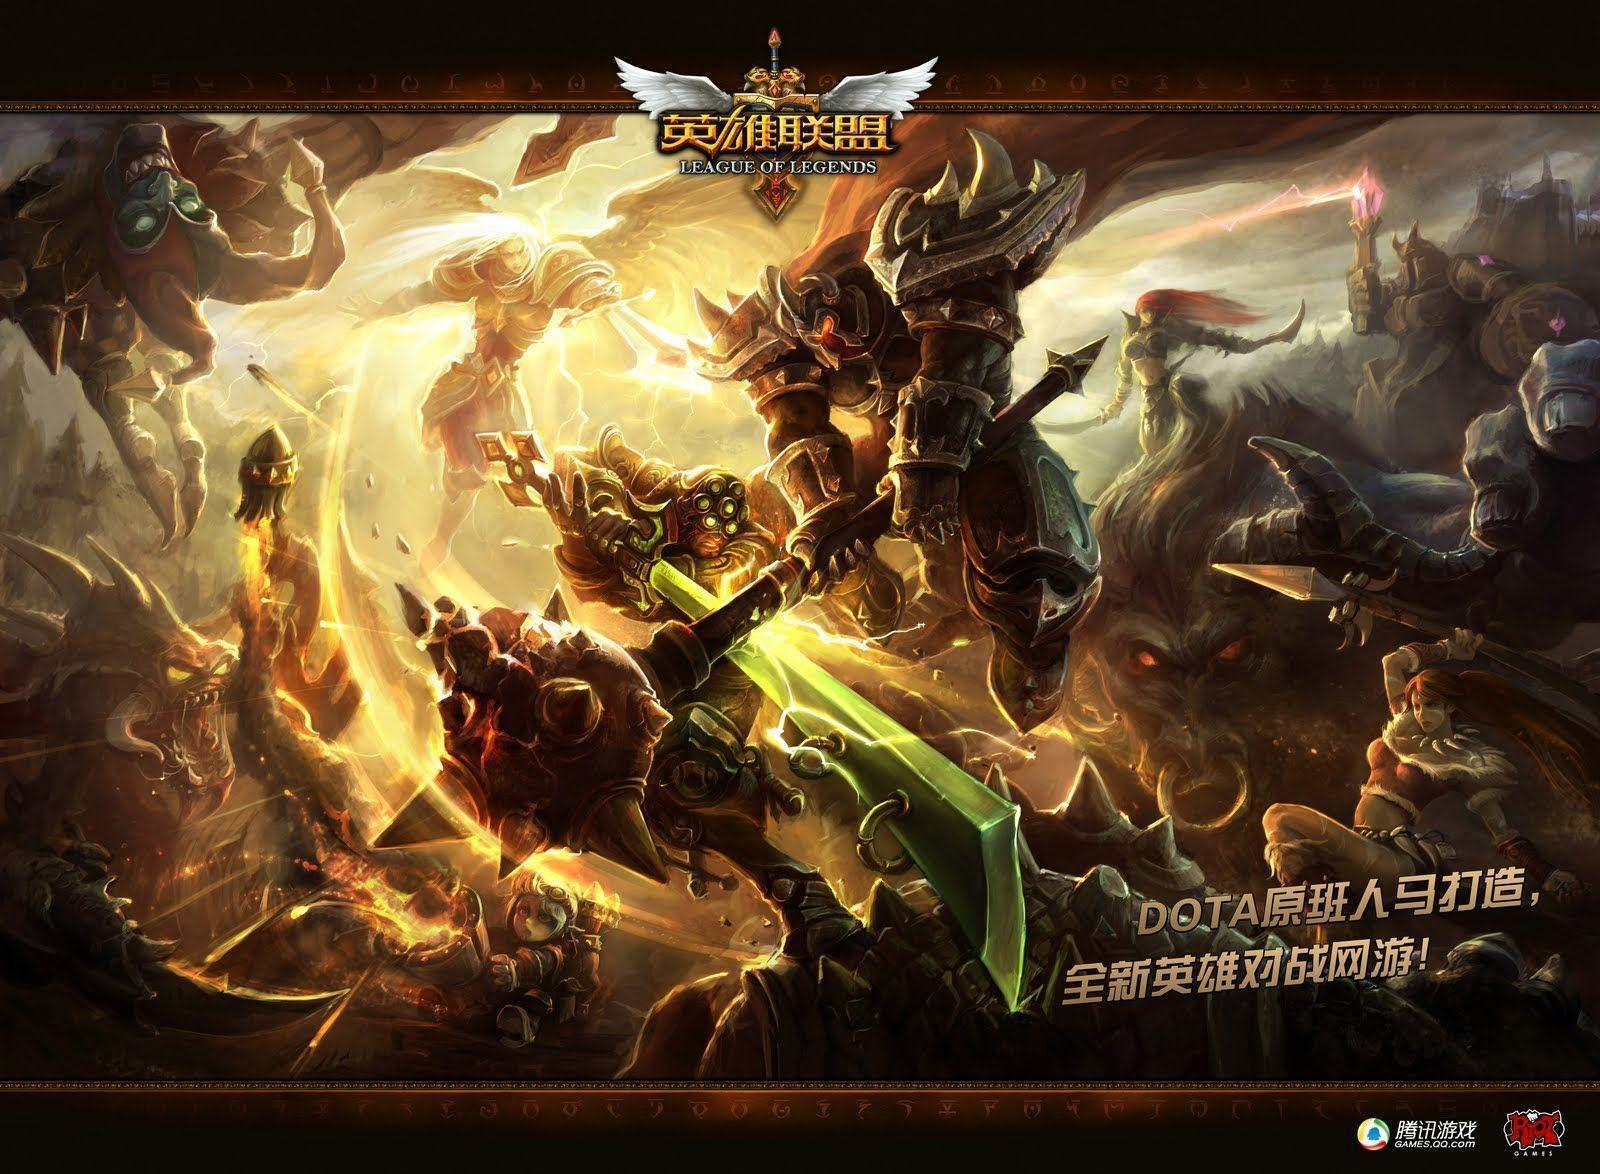 Chinese Dota League of Legends Backgrounds Wallpapers